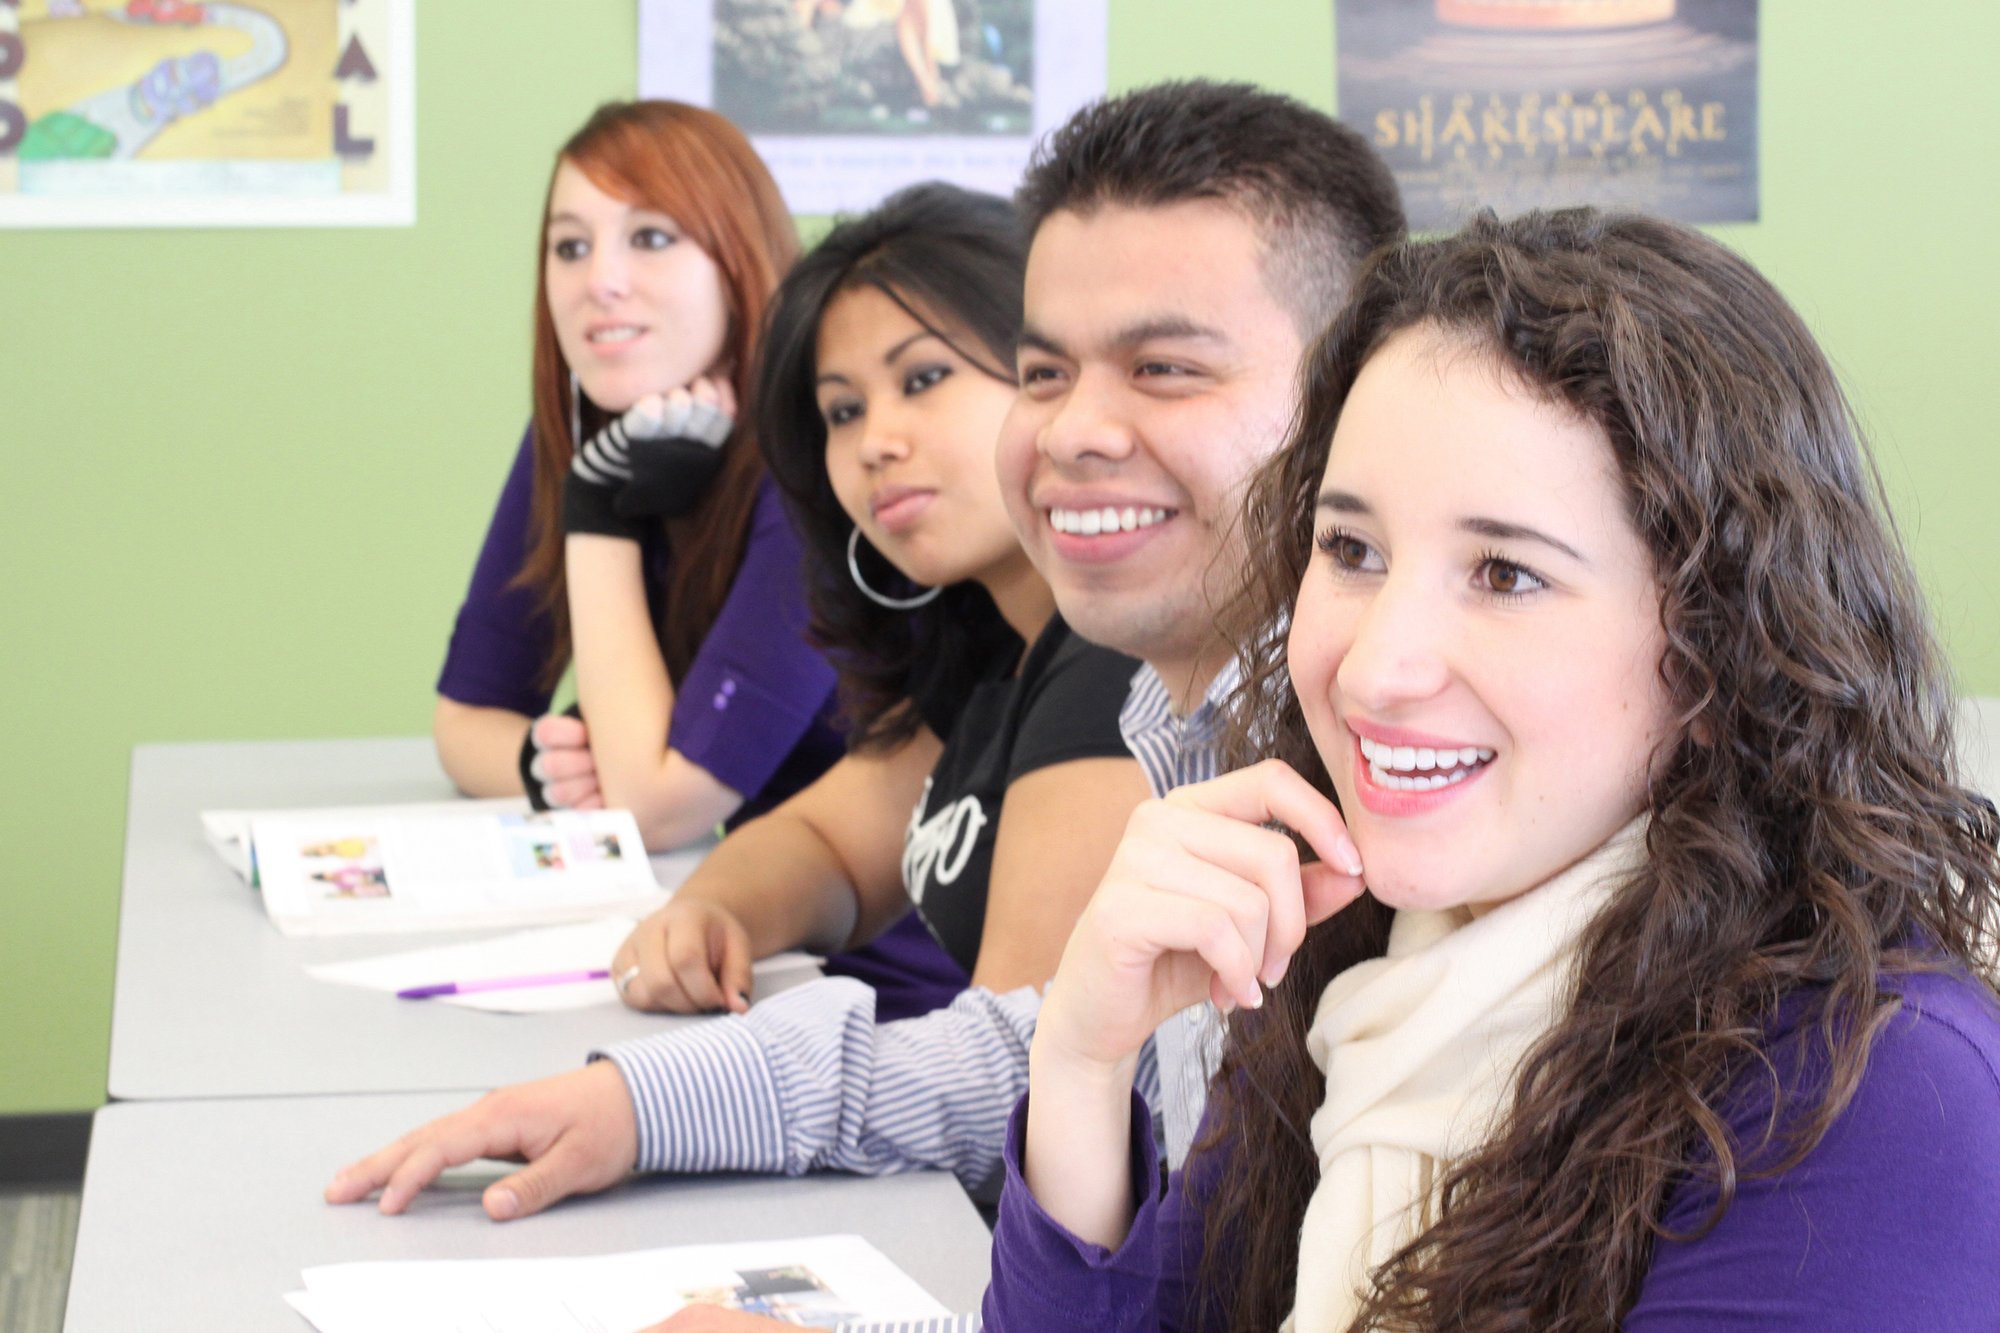 Four CCD students smiling at professor